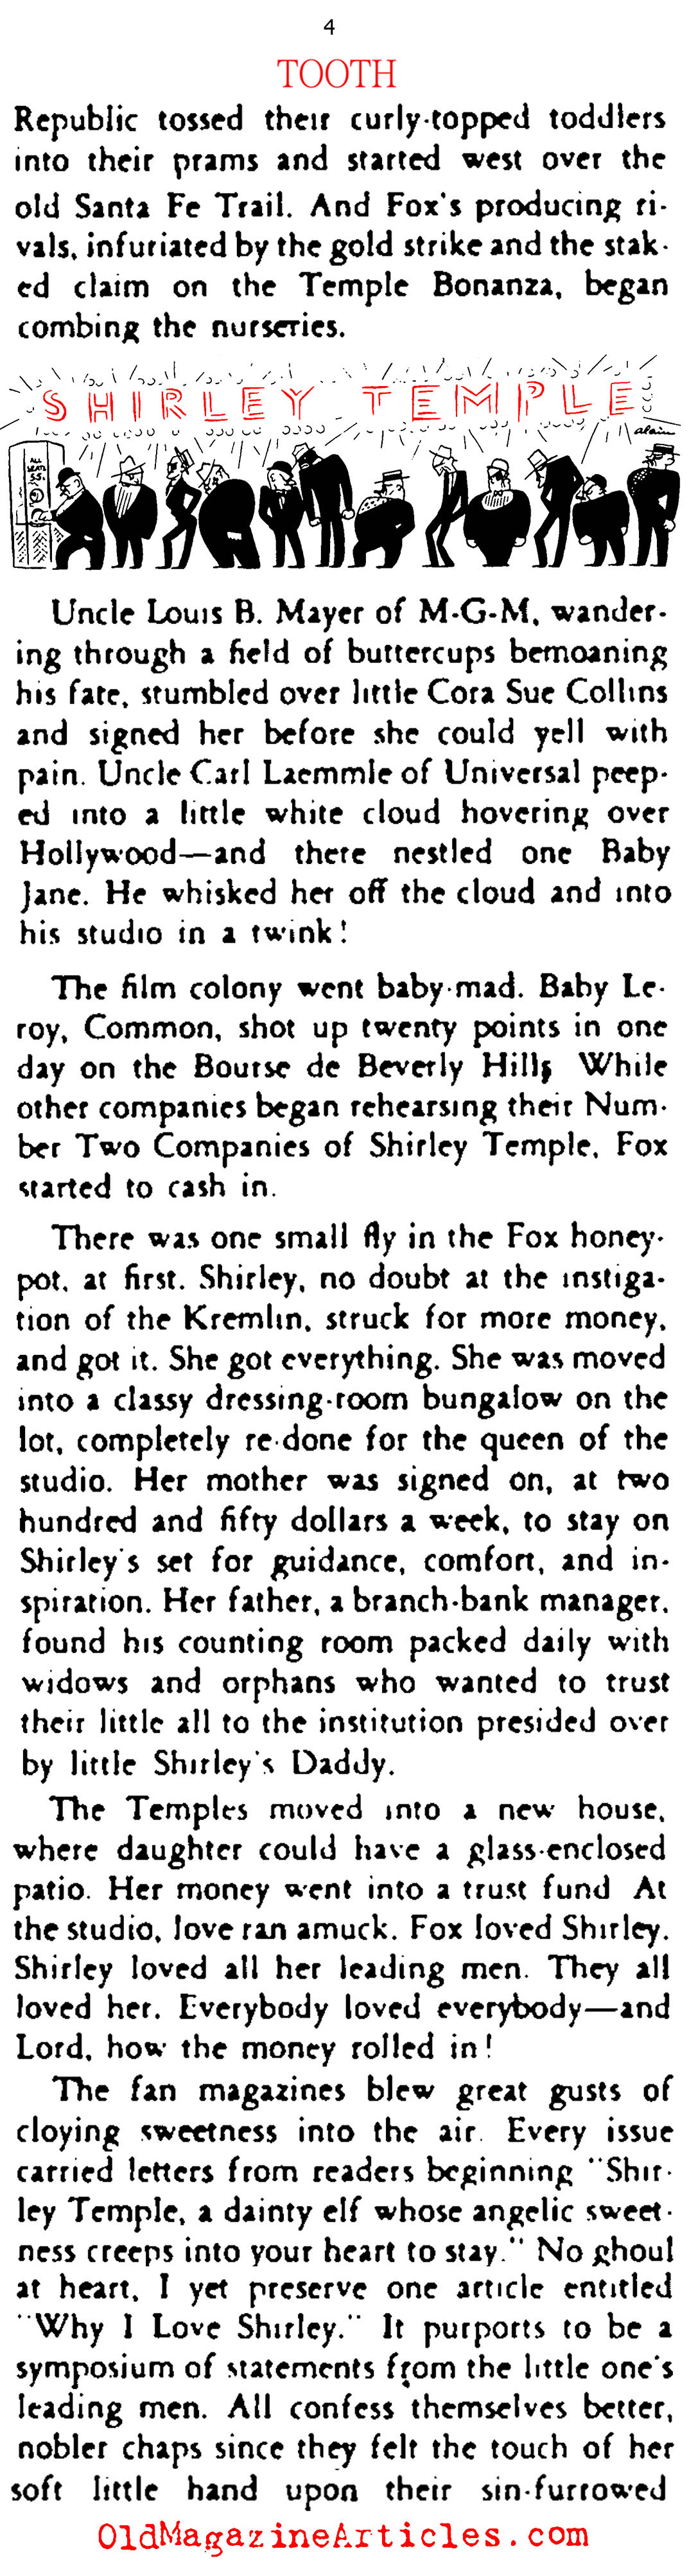 Shirley Temple Sheds a  Baby Tooth! (Stage Magazine, 1935)